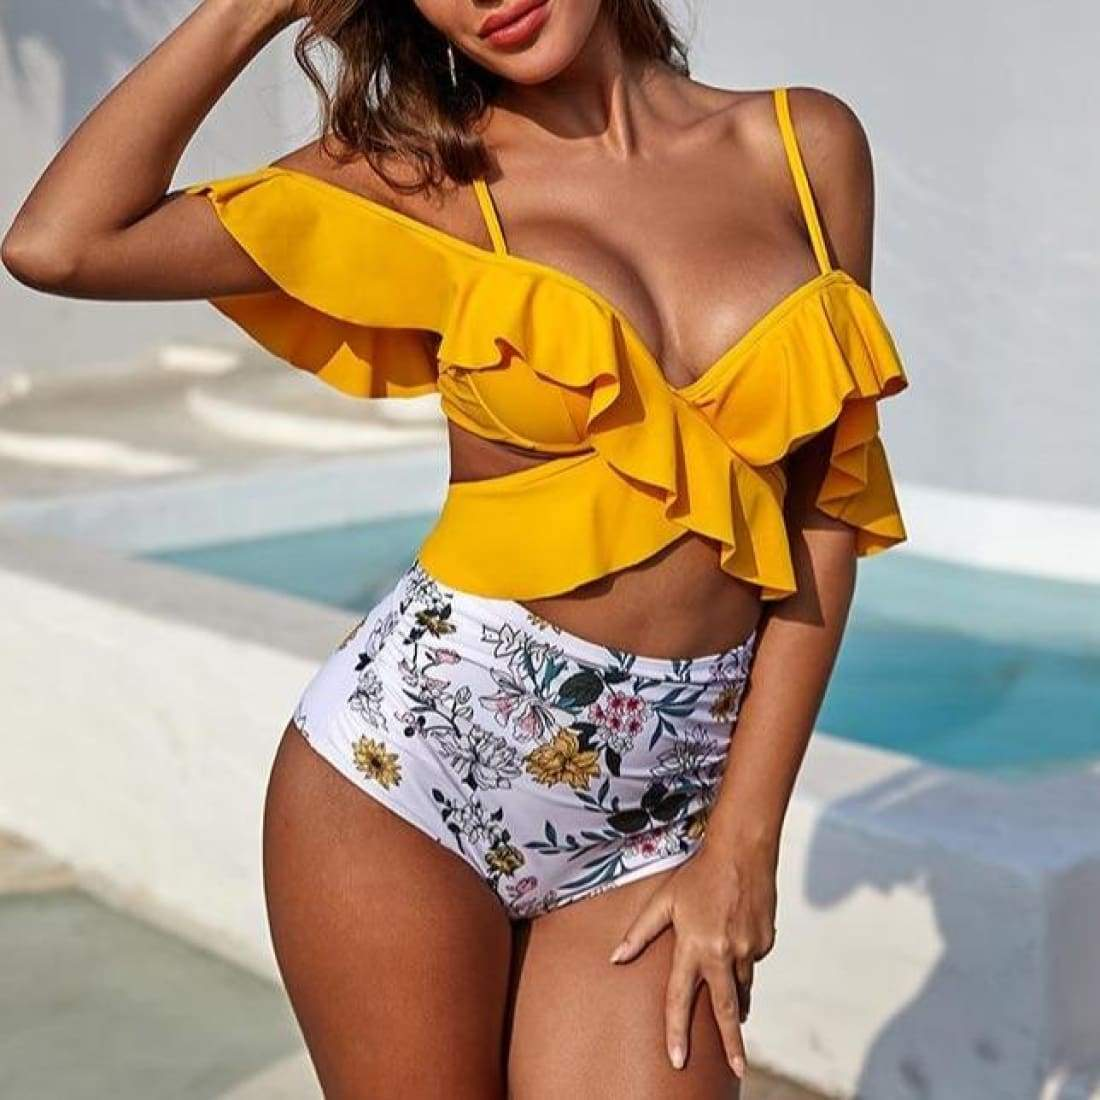 Ruffle off-shoulder swimsuit - Yellow / S - swimsuit swimsuits bikini bikinis bathing suit bathing suits swimwear swimming suits